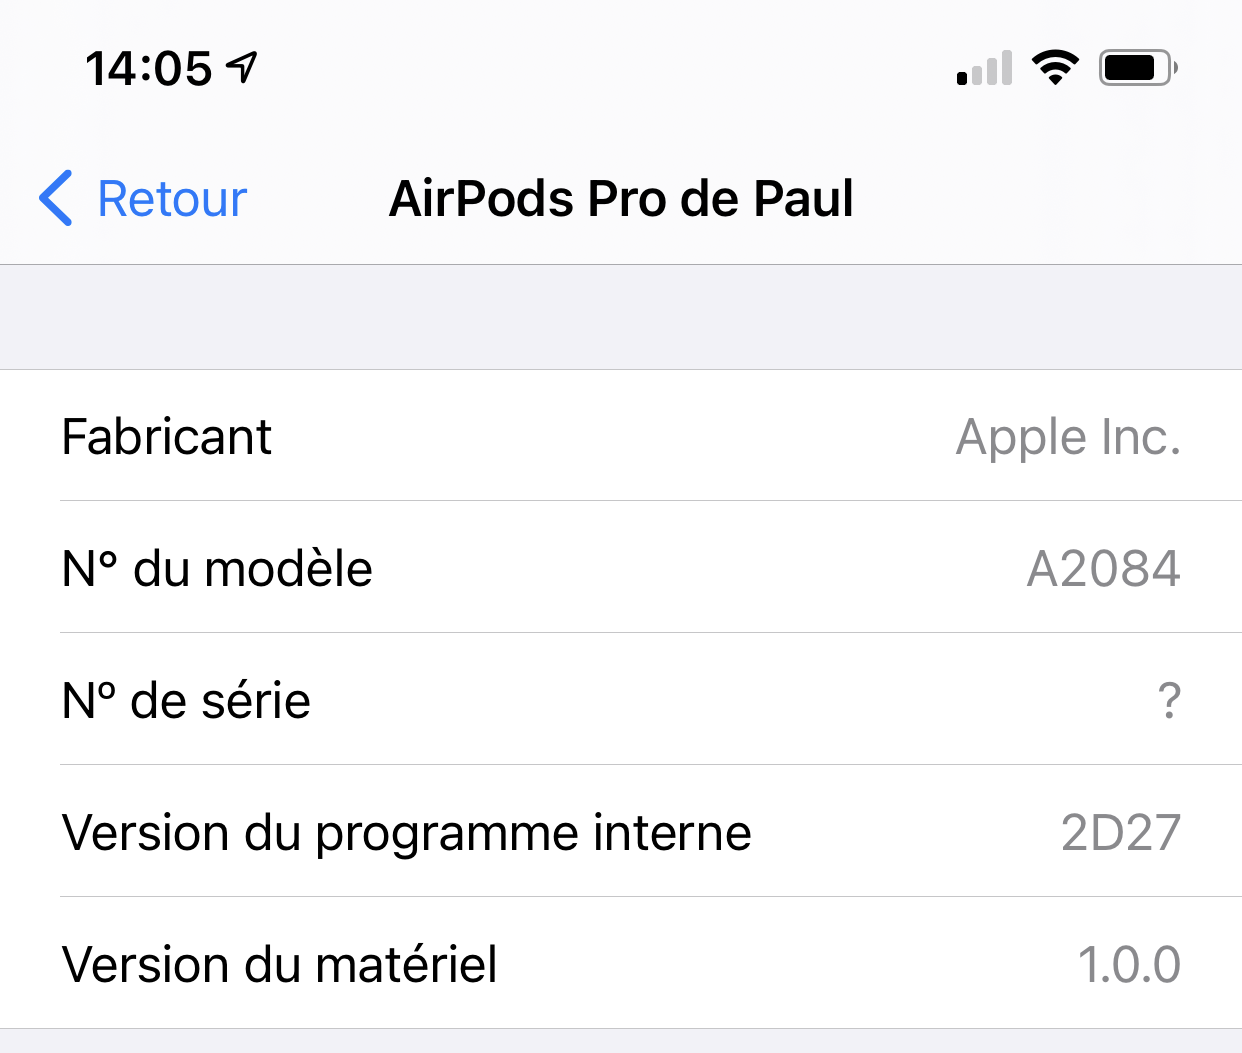 Infos%20AirPods%20Pro.png?source=viewer&